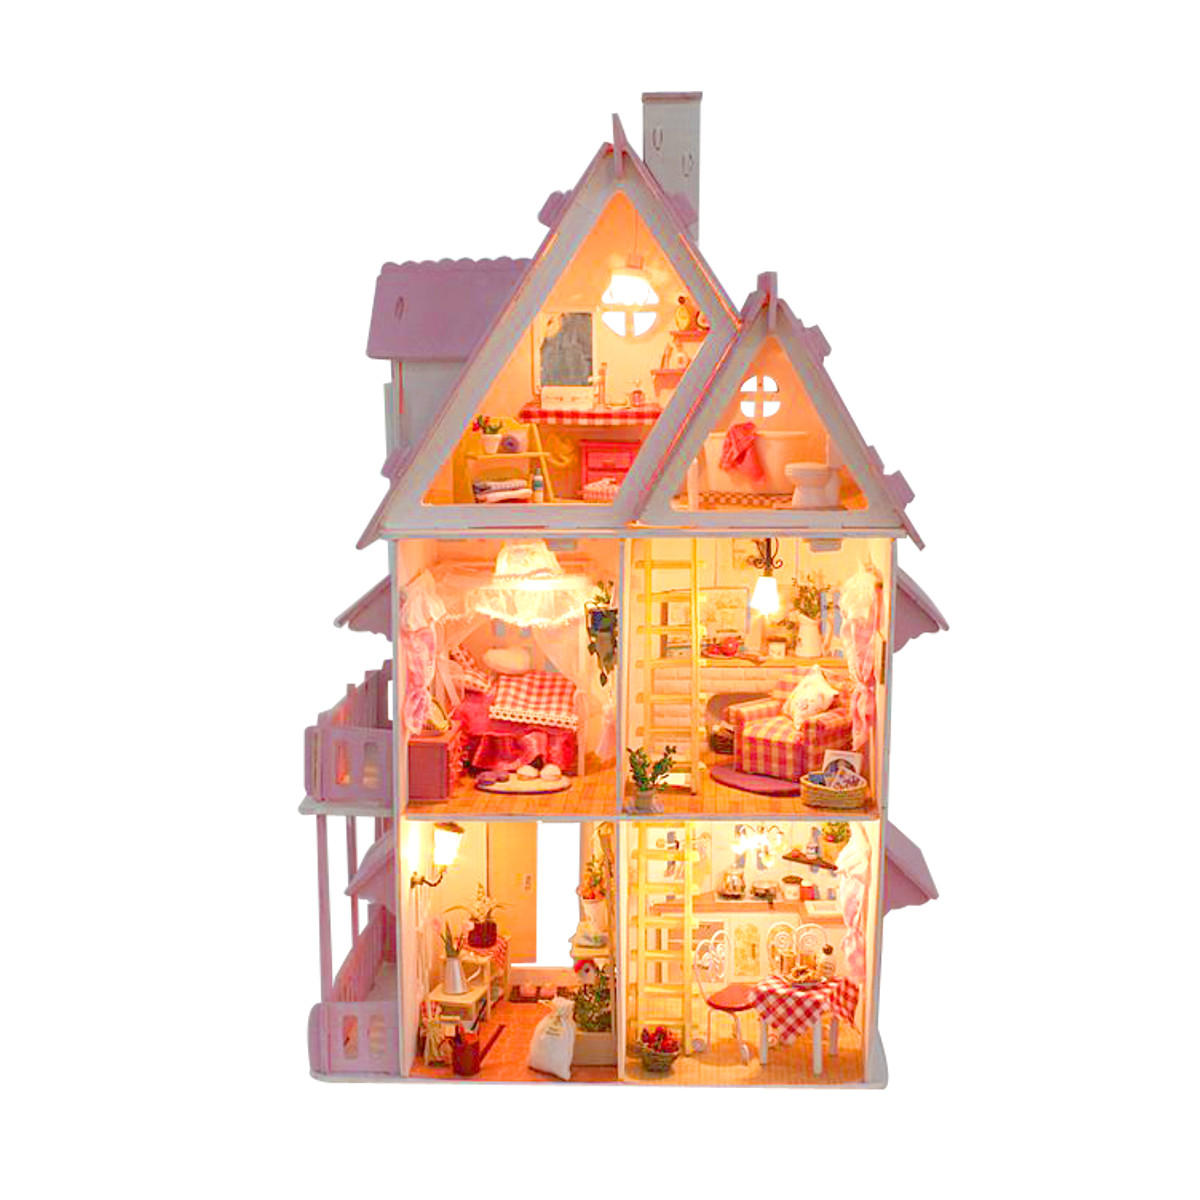 Fine Large Wooden Kids Doll House Barbie Kit Girls Play Dollhouse Mansion Wiring Digital Resources Millslowmaporg